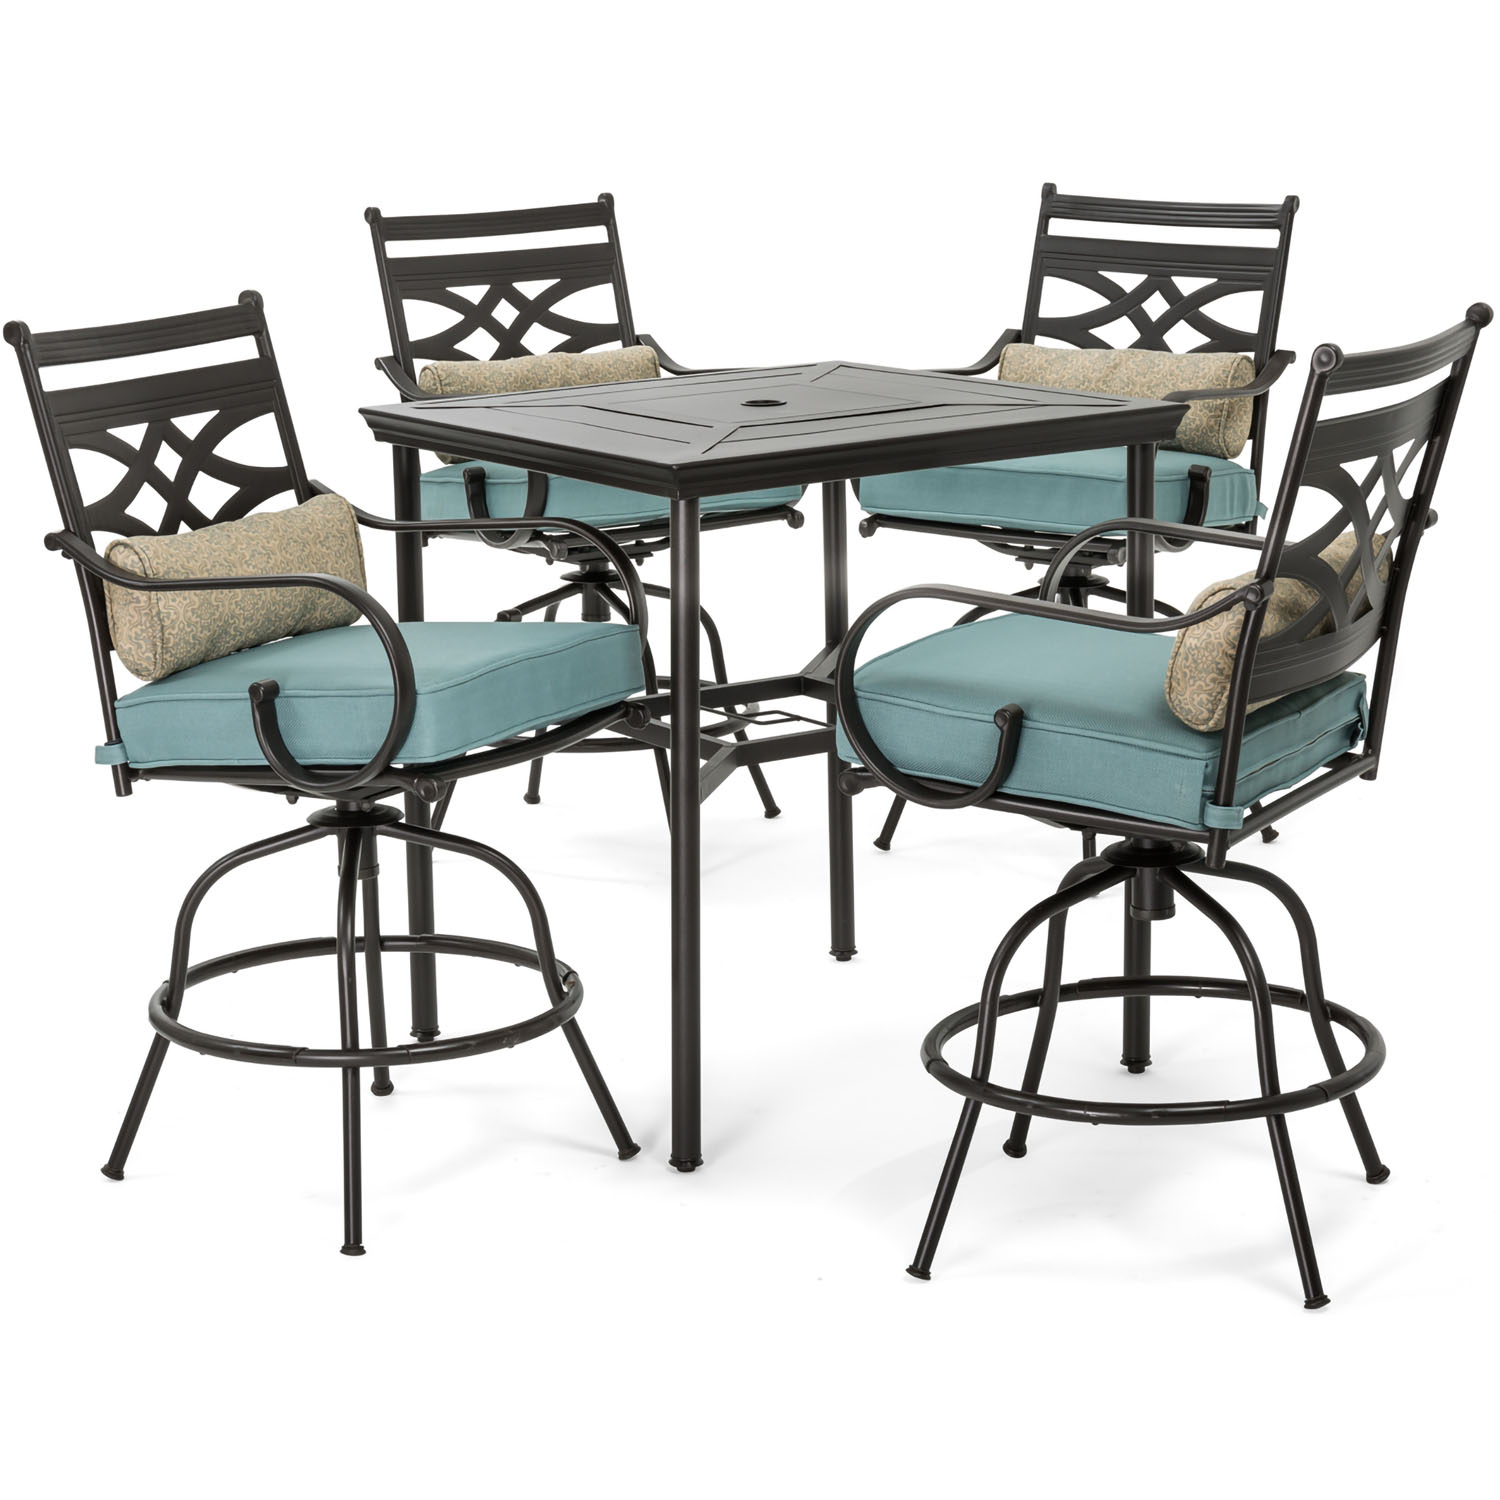 hanover montclair 5 piece high dining patio set in ocean blue with 4 swivel chairs and a 33 in counter height dining table